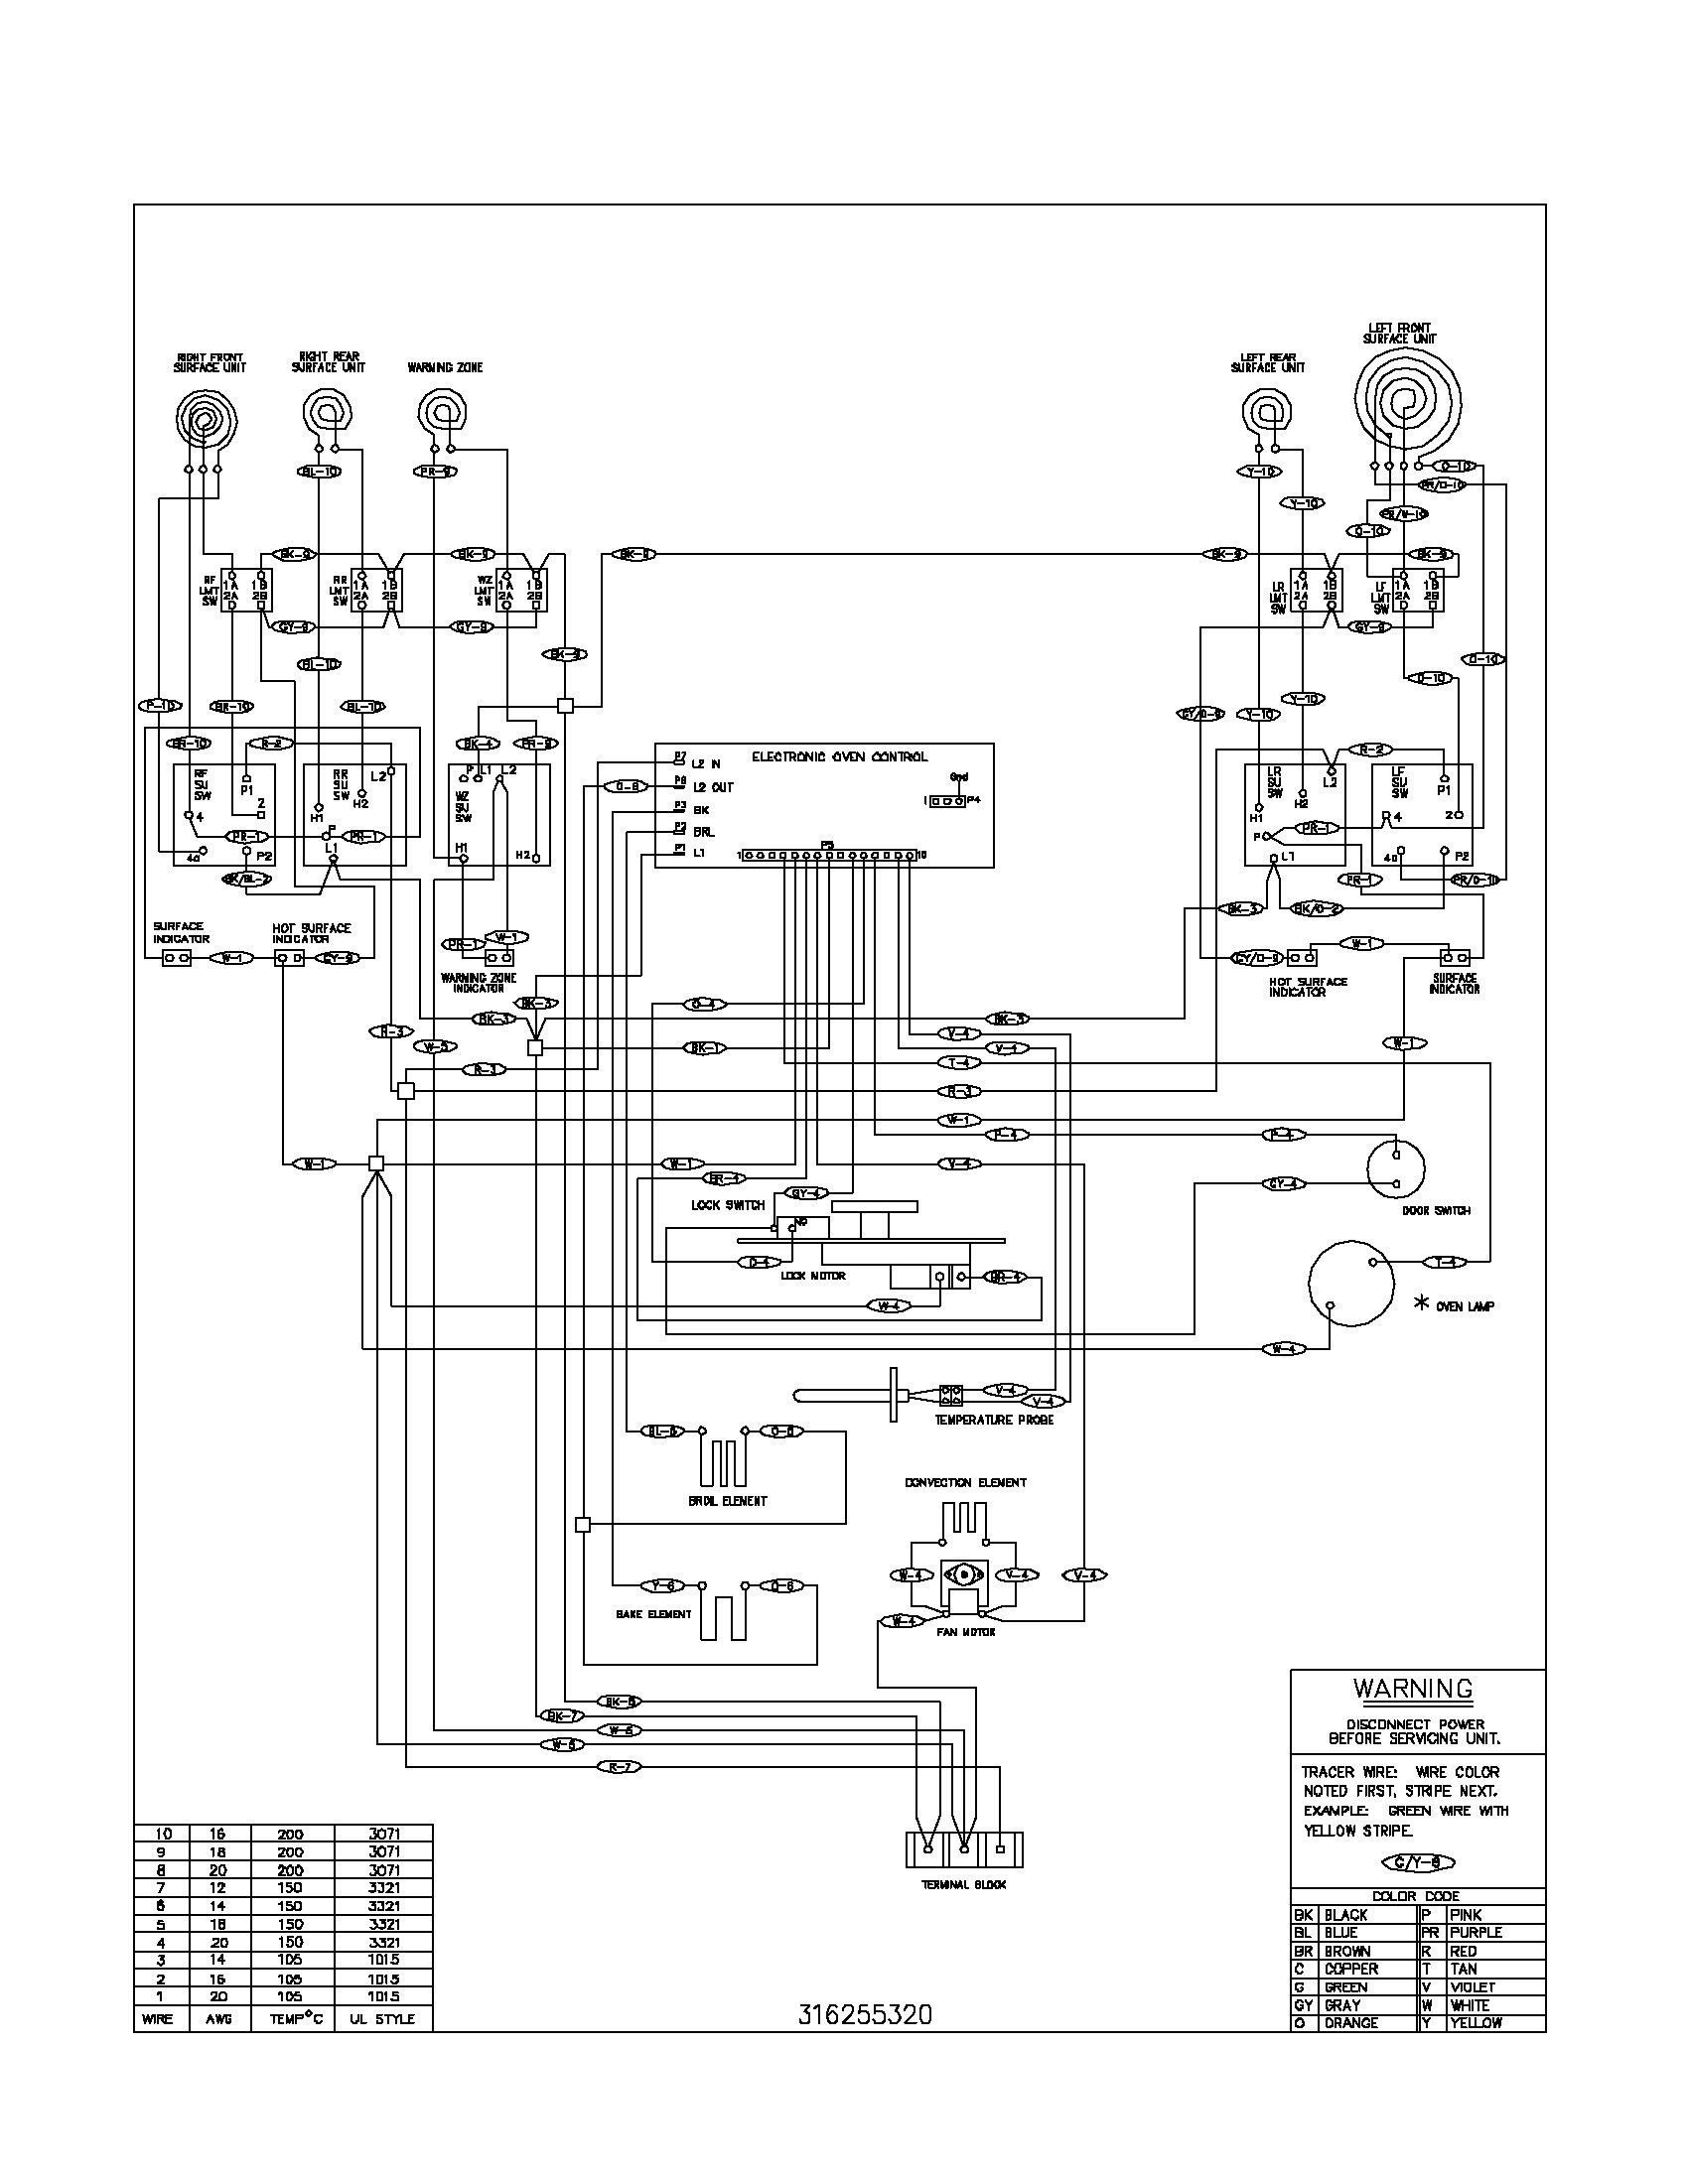 4400 International Truck Wiring Diagrams | schematic and wiring diagram in  2020 | Electric stove, Electrical diagram, Electric ovenPinterest